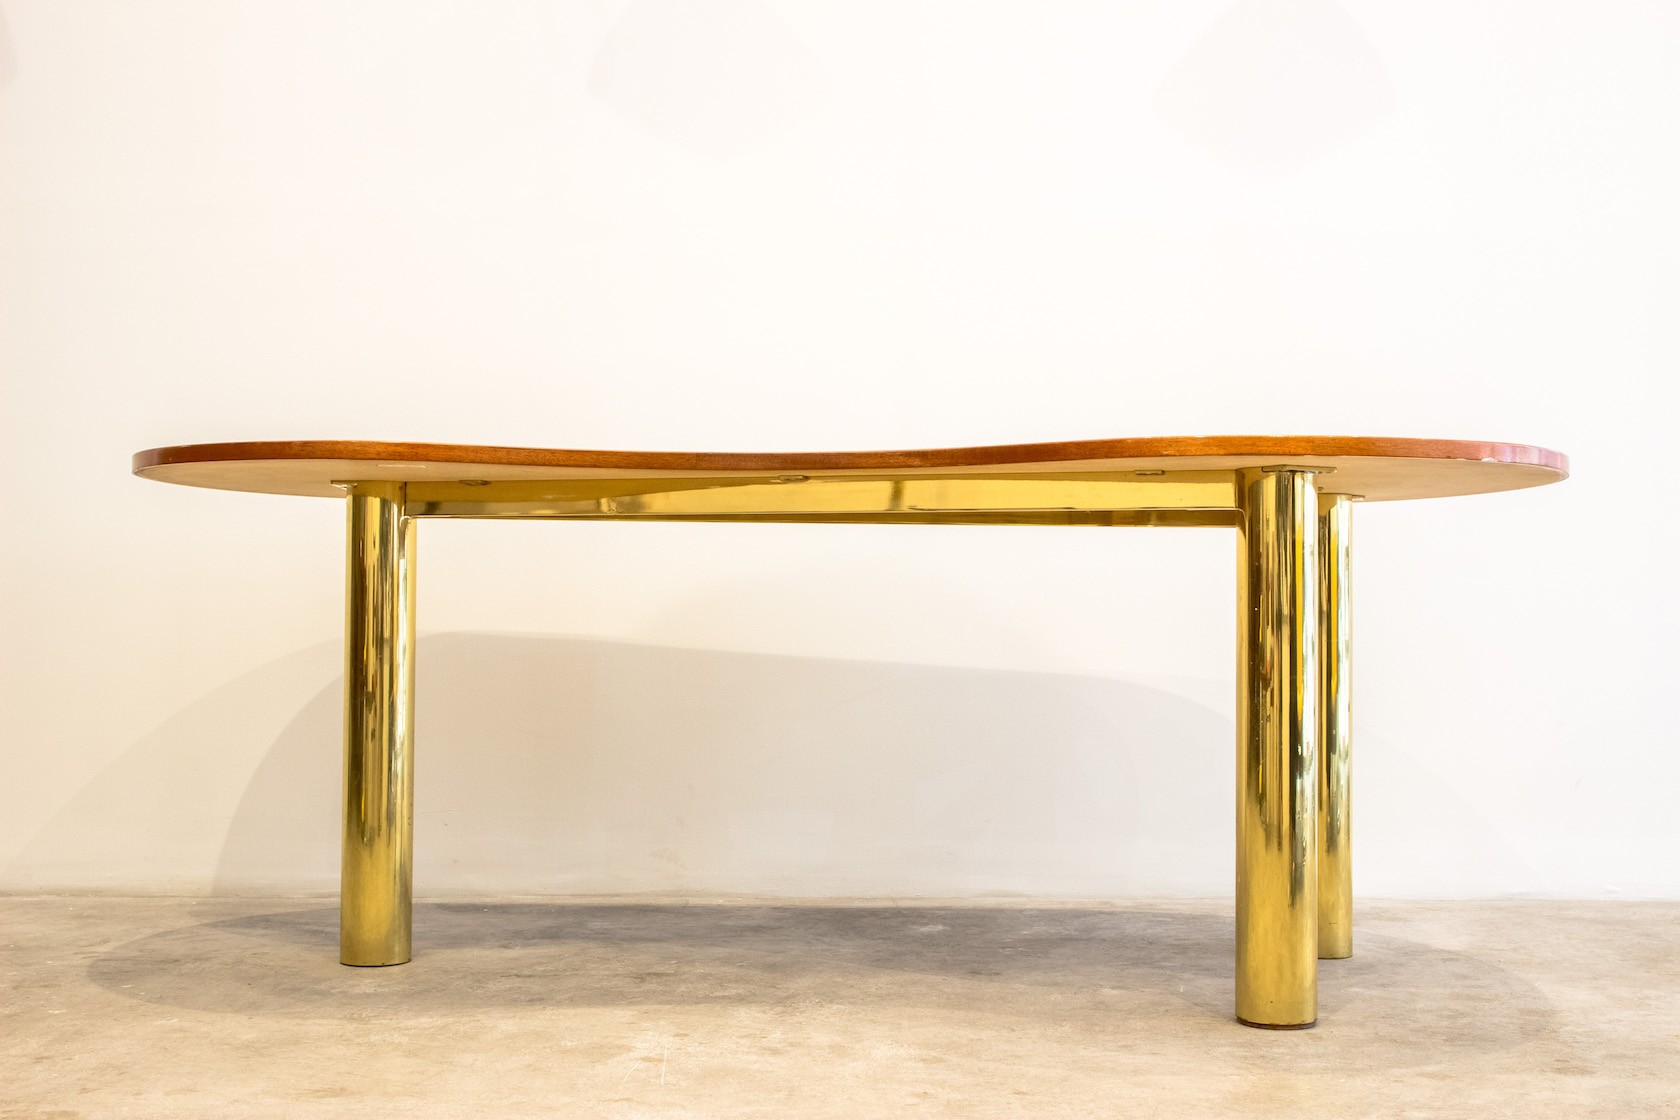 ... Bean Shaped Table * 1960s. Previous Next